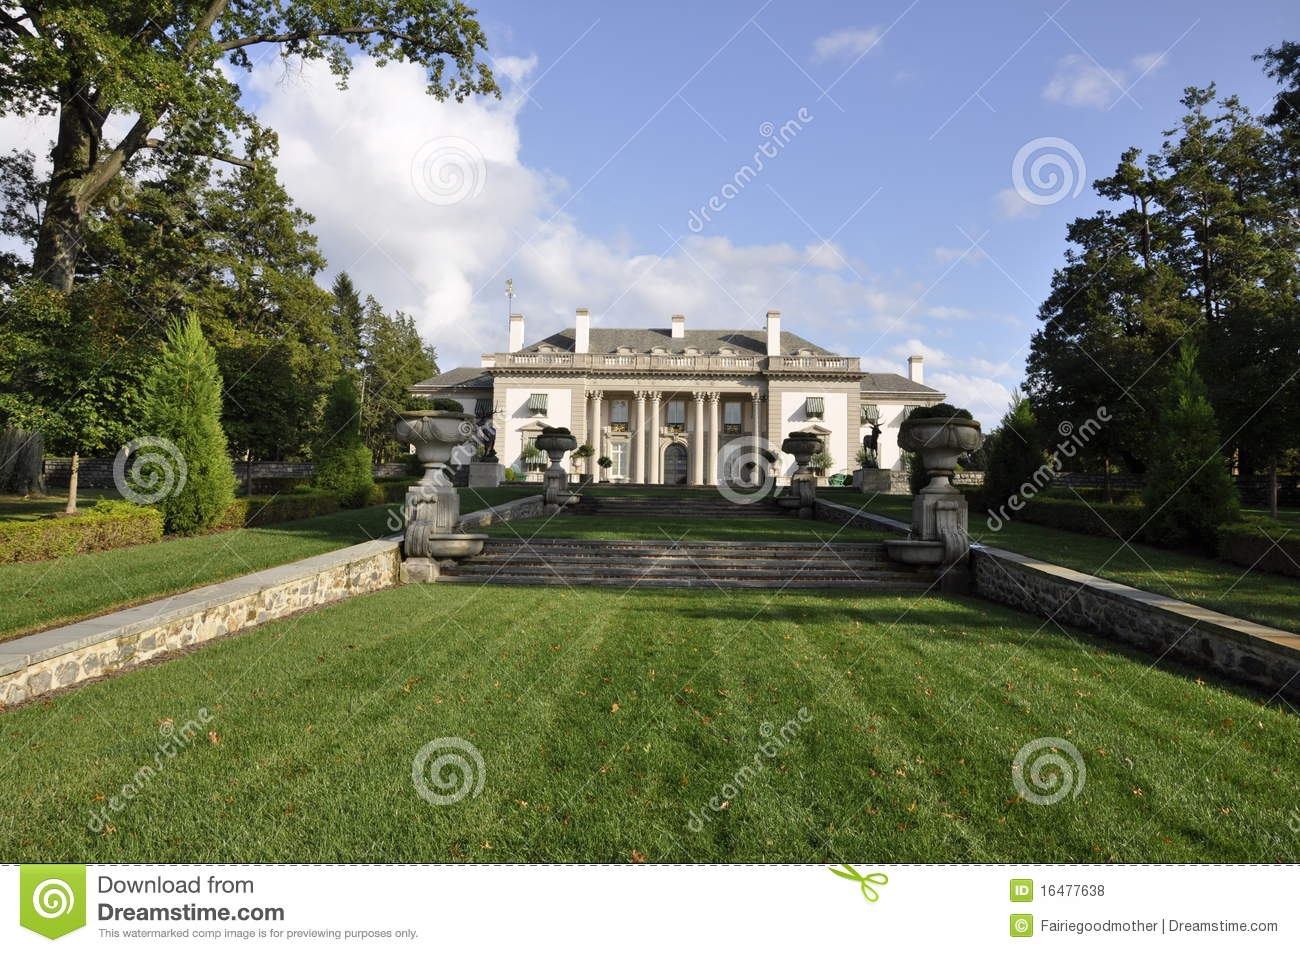 Dreamstime Images Dupont Mansion And Gardens Stock Photo Image Of House